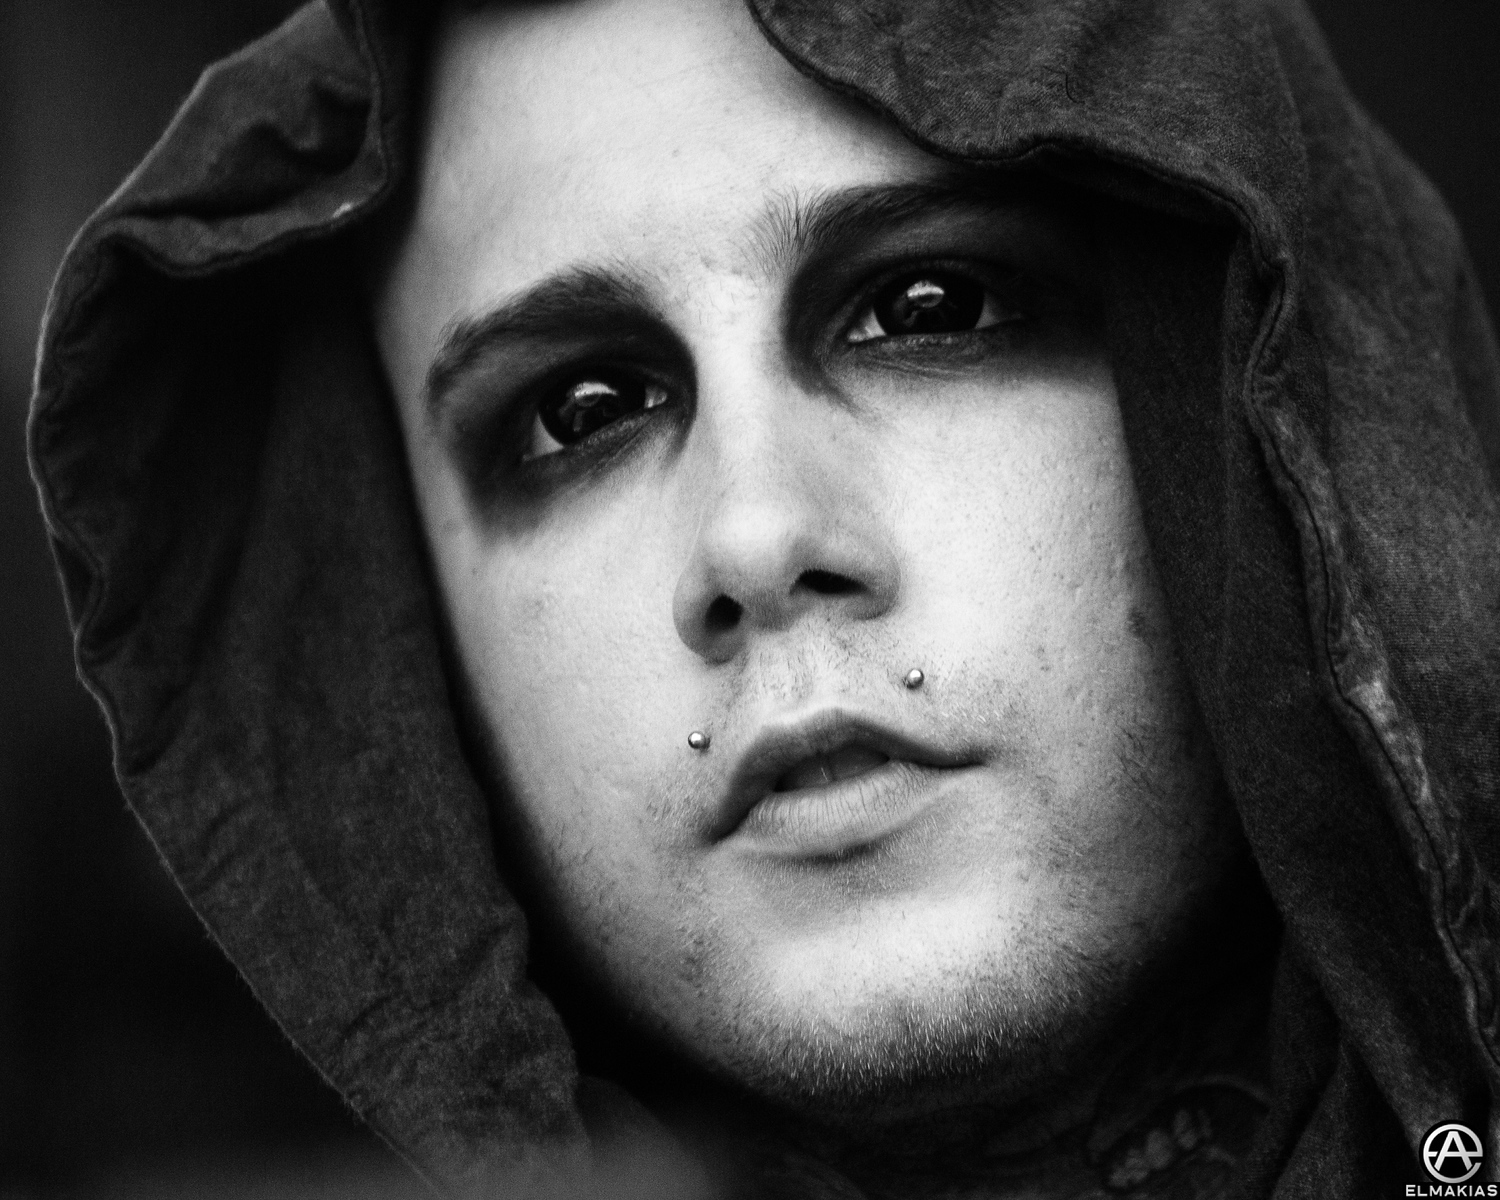 Onstage Portait - Joshua Balz of Motionless In White